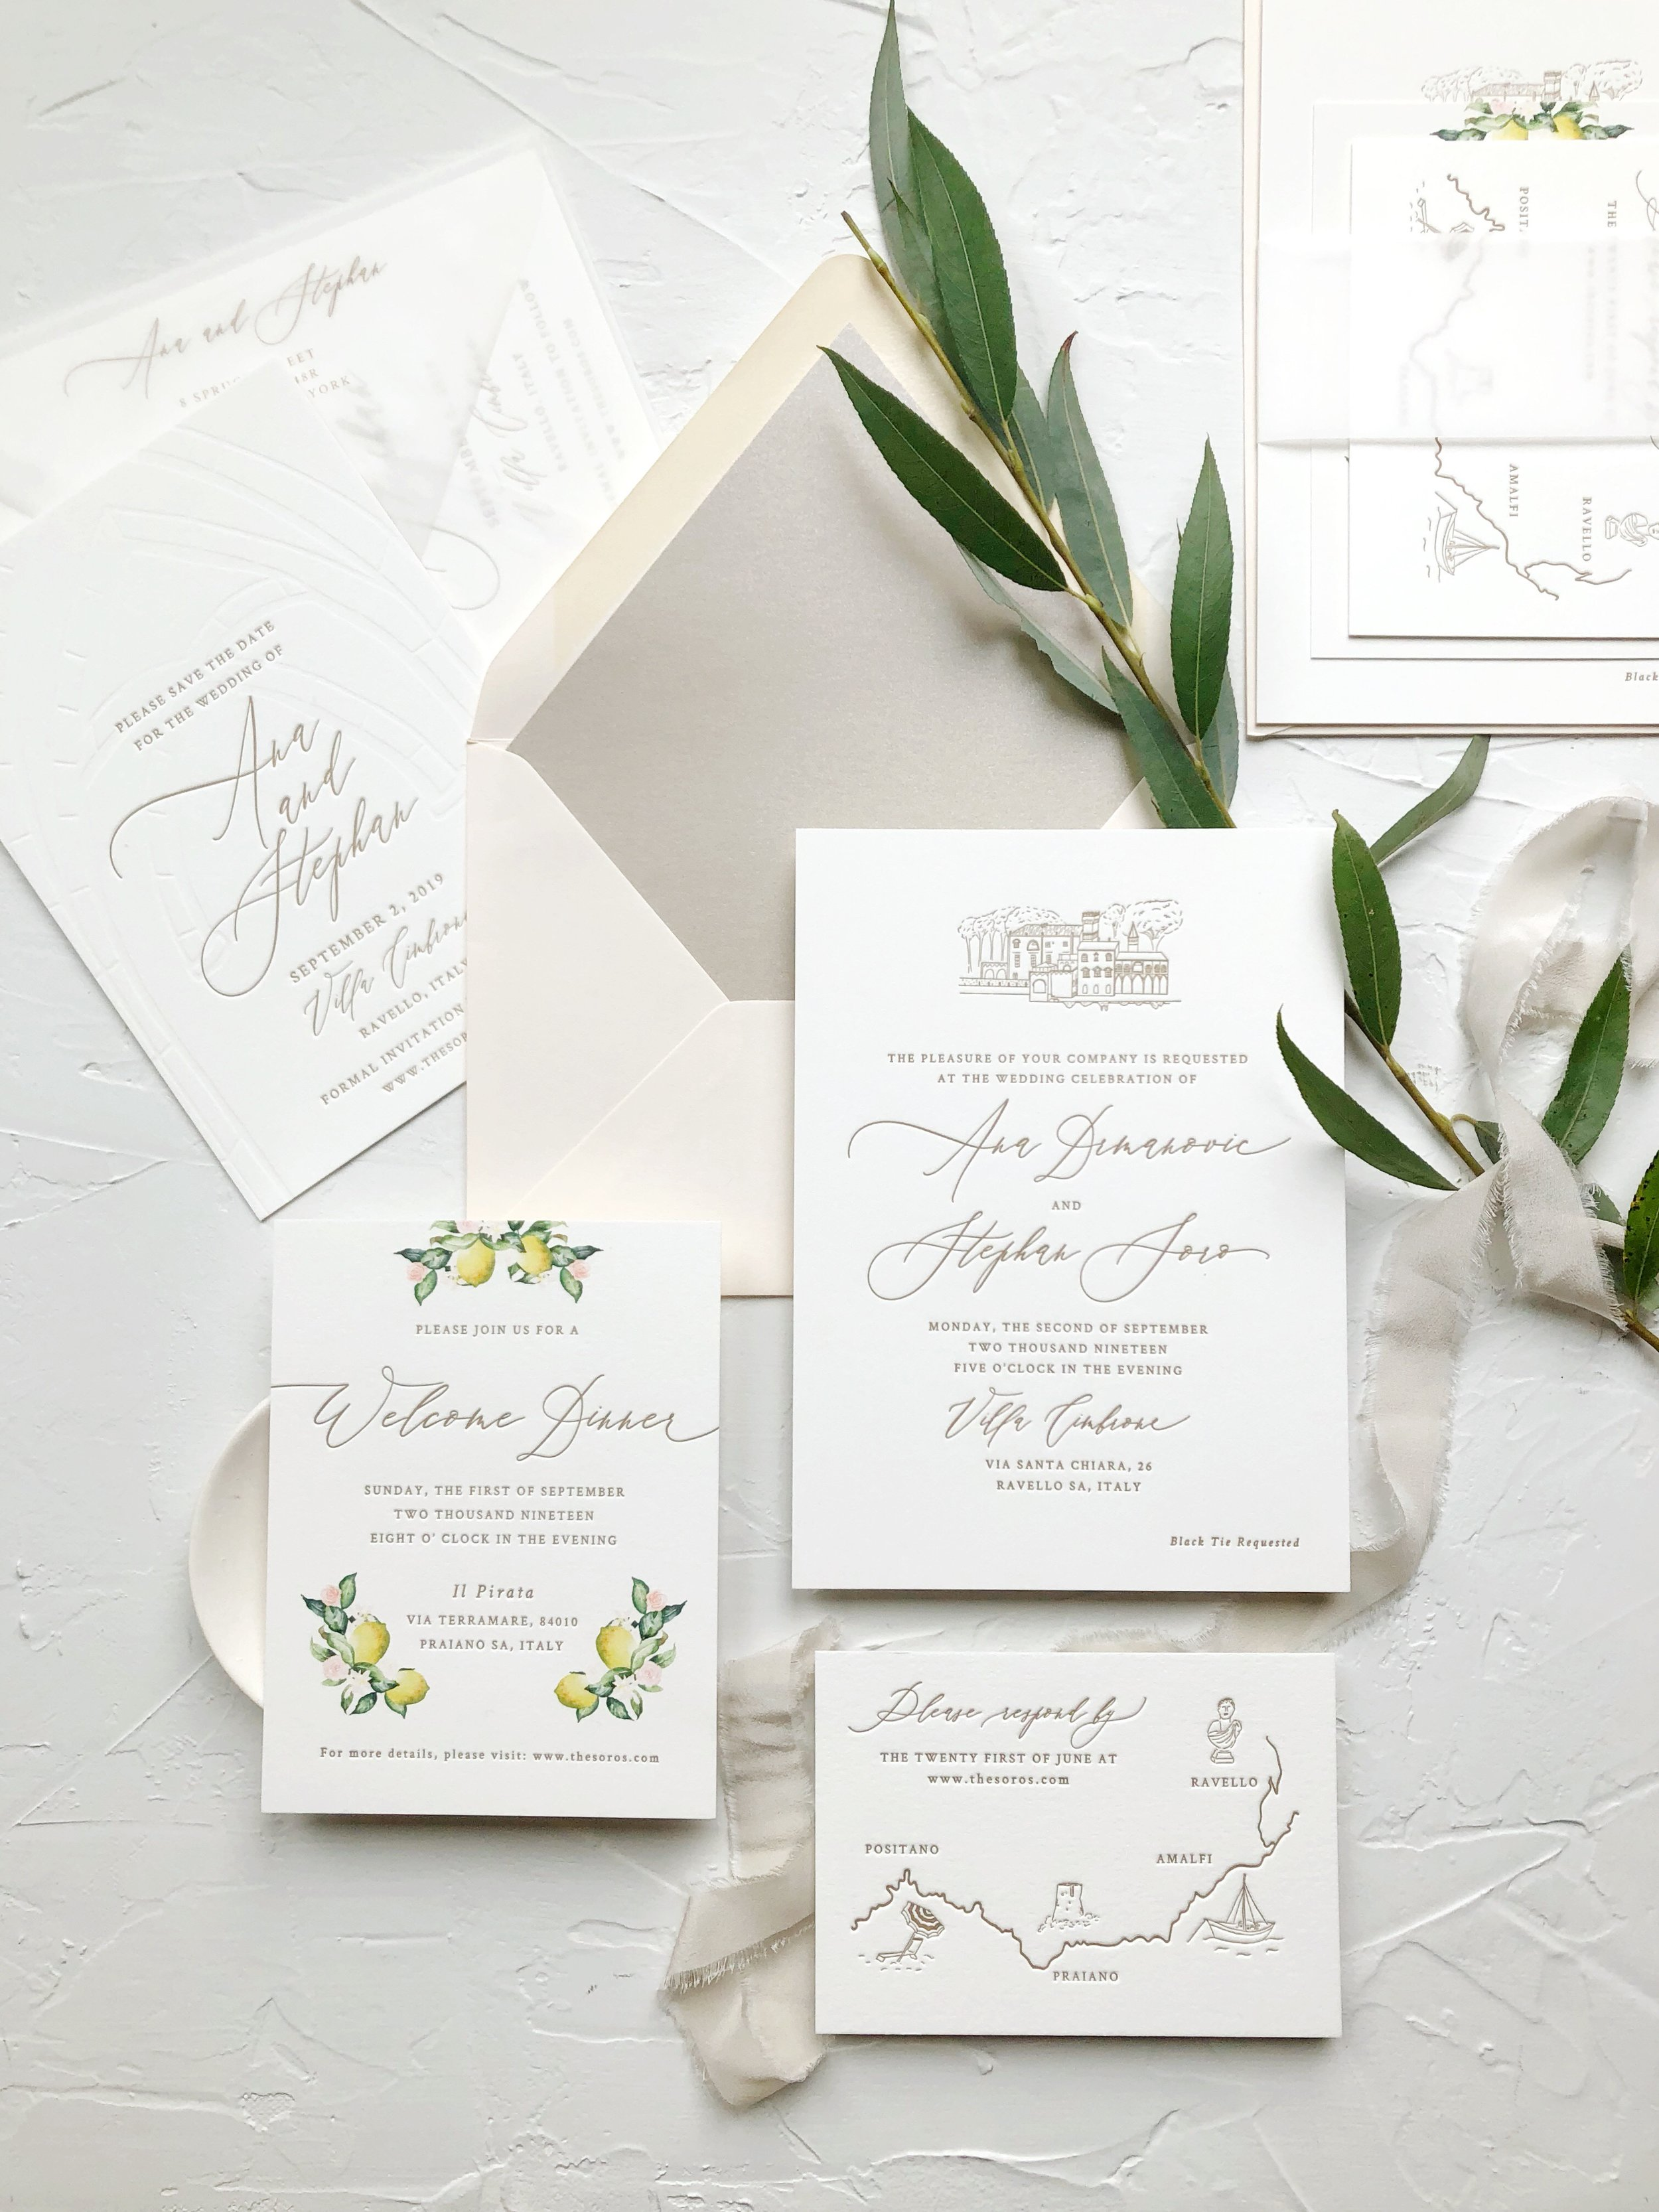 Letterpress Invitation Suite with watercolor